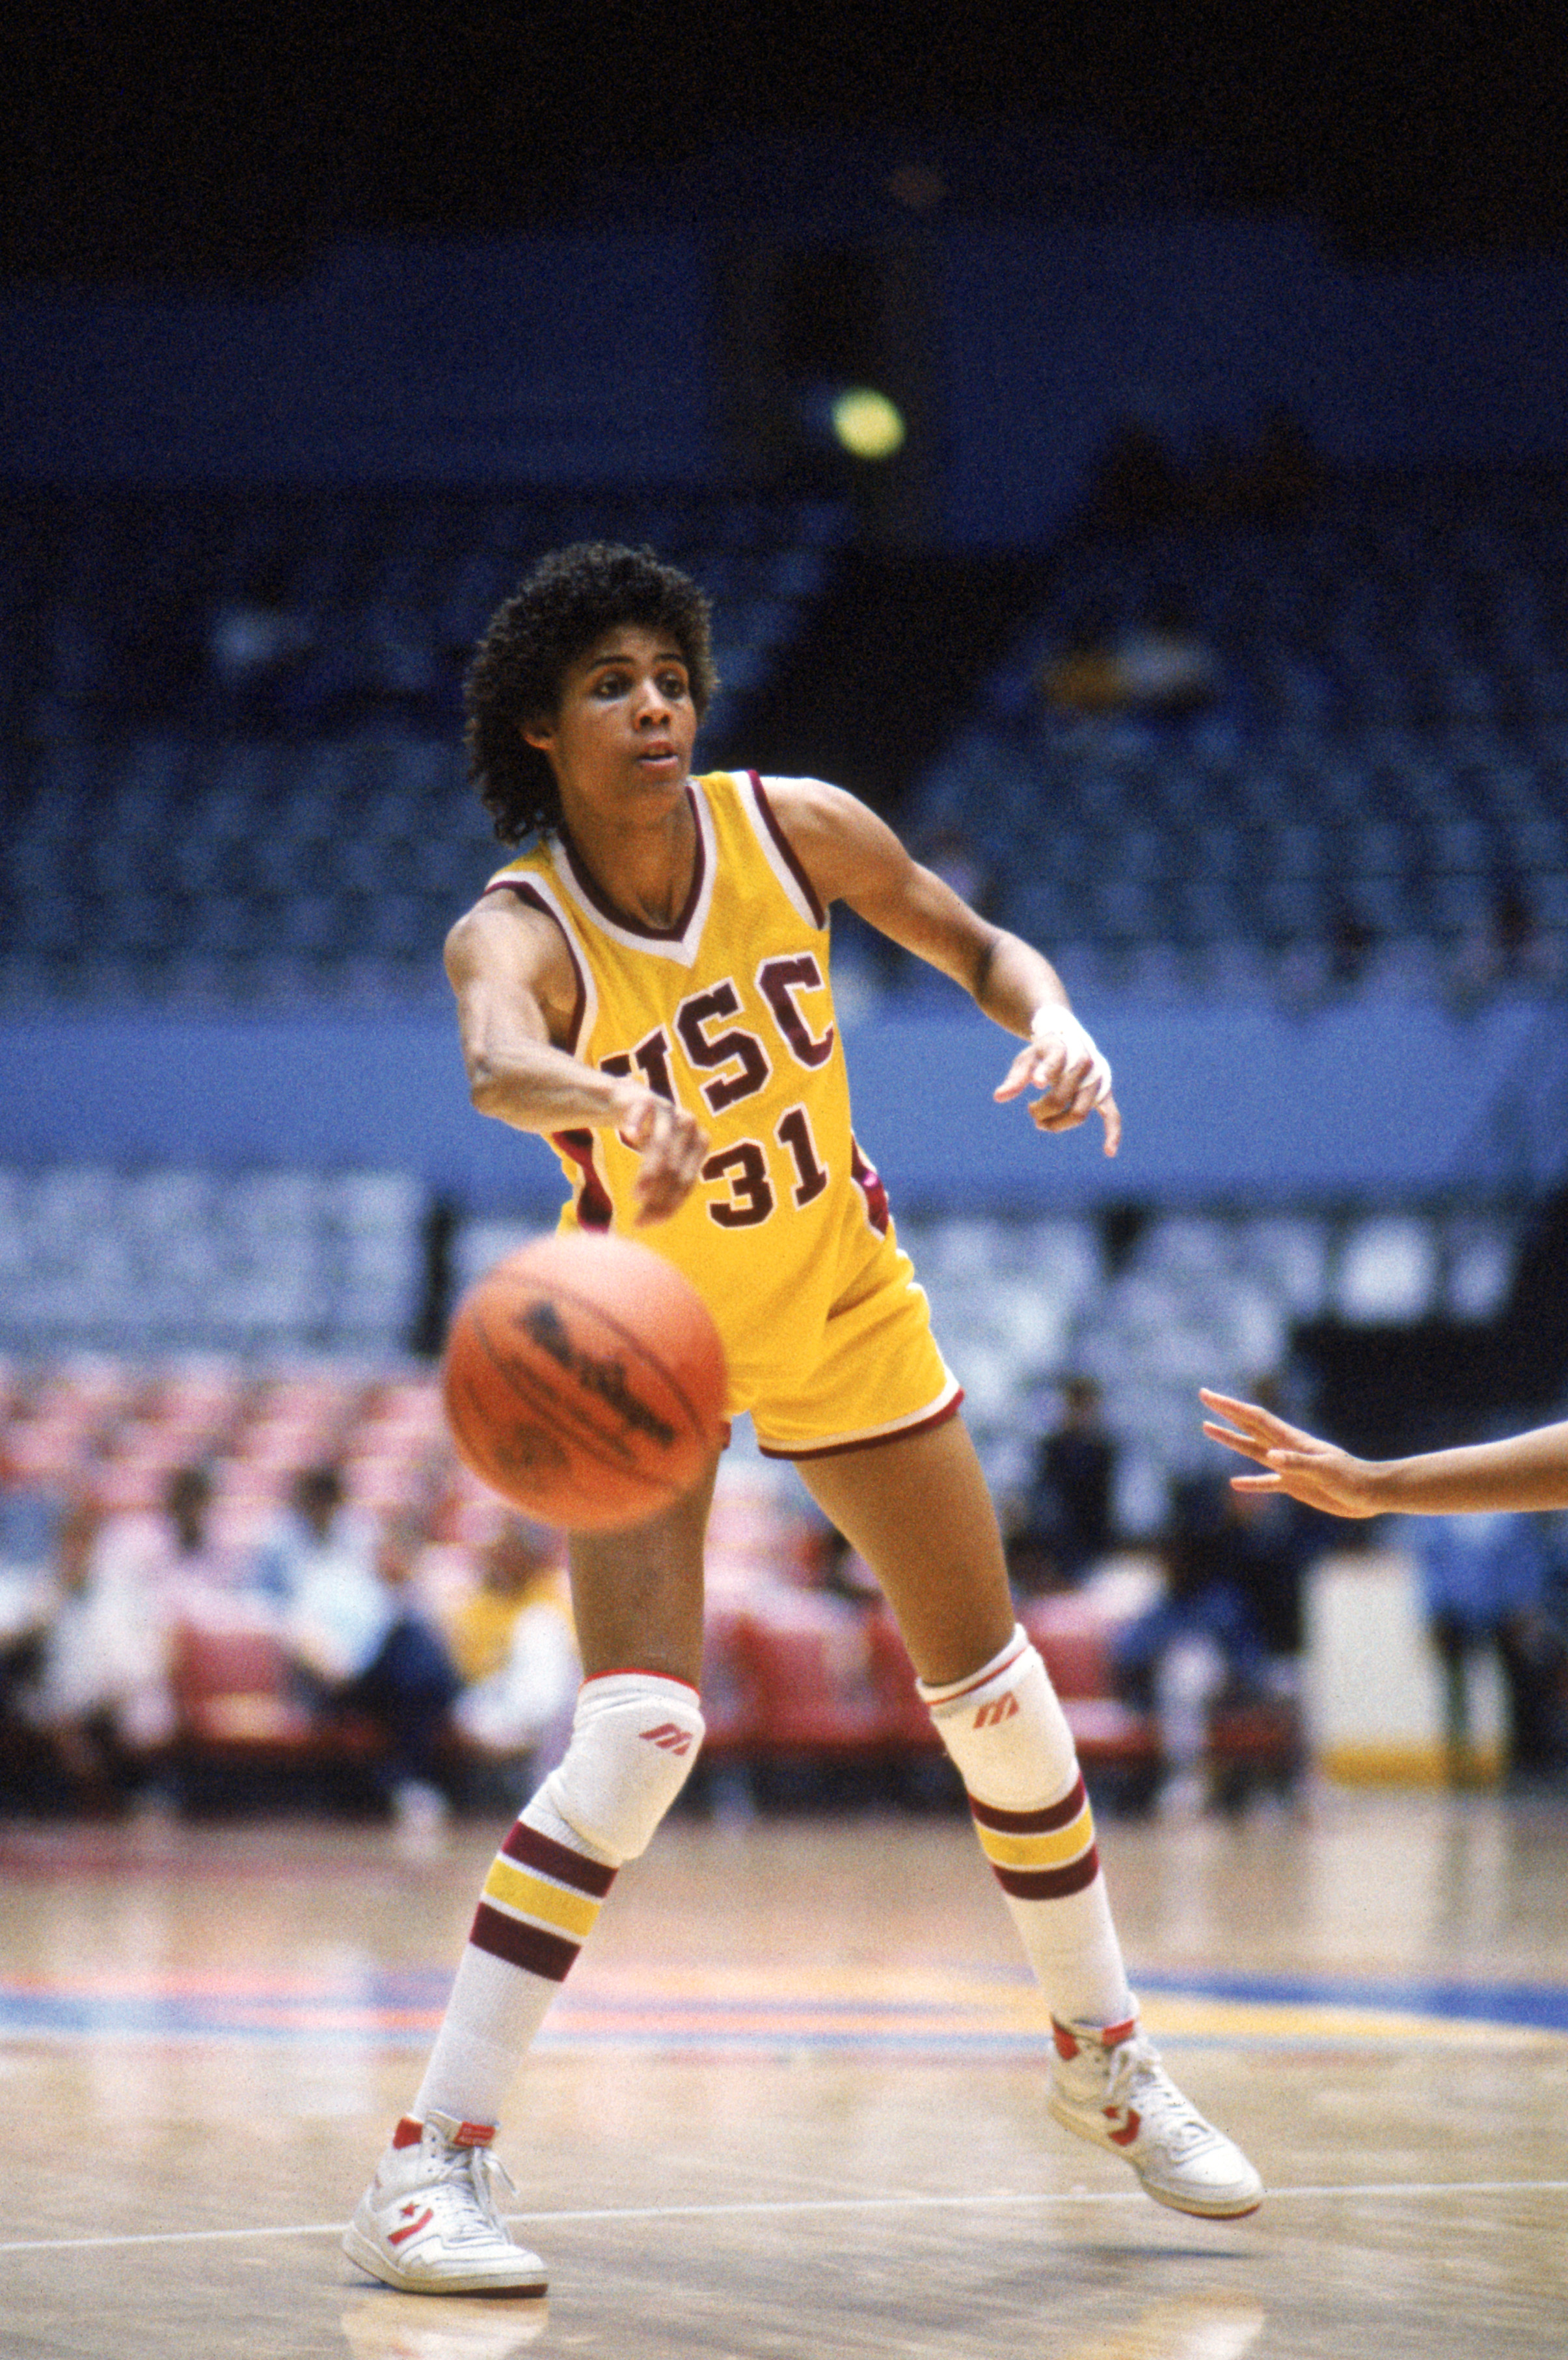 PALO ALTO, CA - Cheryl Miller #31 of USC Trojans passes the ball during a women basketball game against the Stanford Cardinal in Palo Alto, California. Cheryl Miller's college career lasted from 1983-1986. (Photo by: Mike Powell/Getty Images)